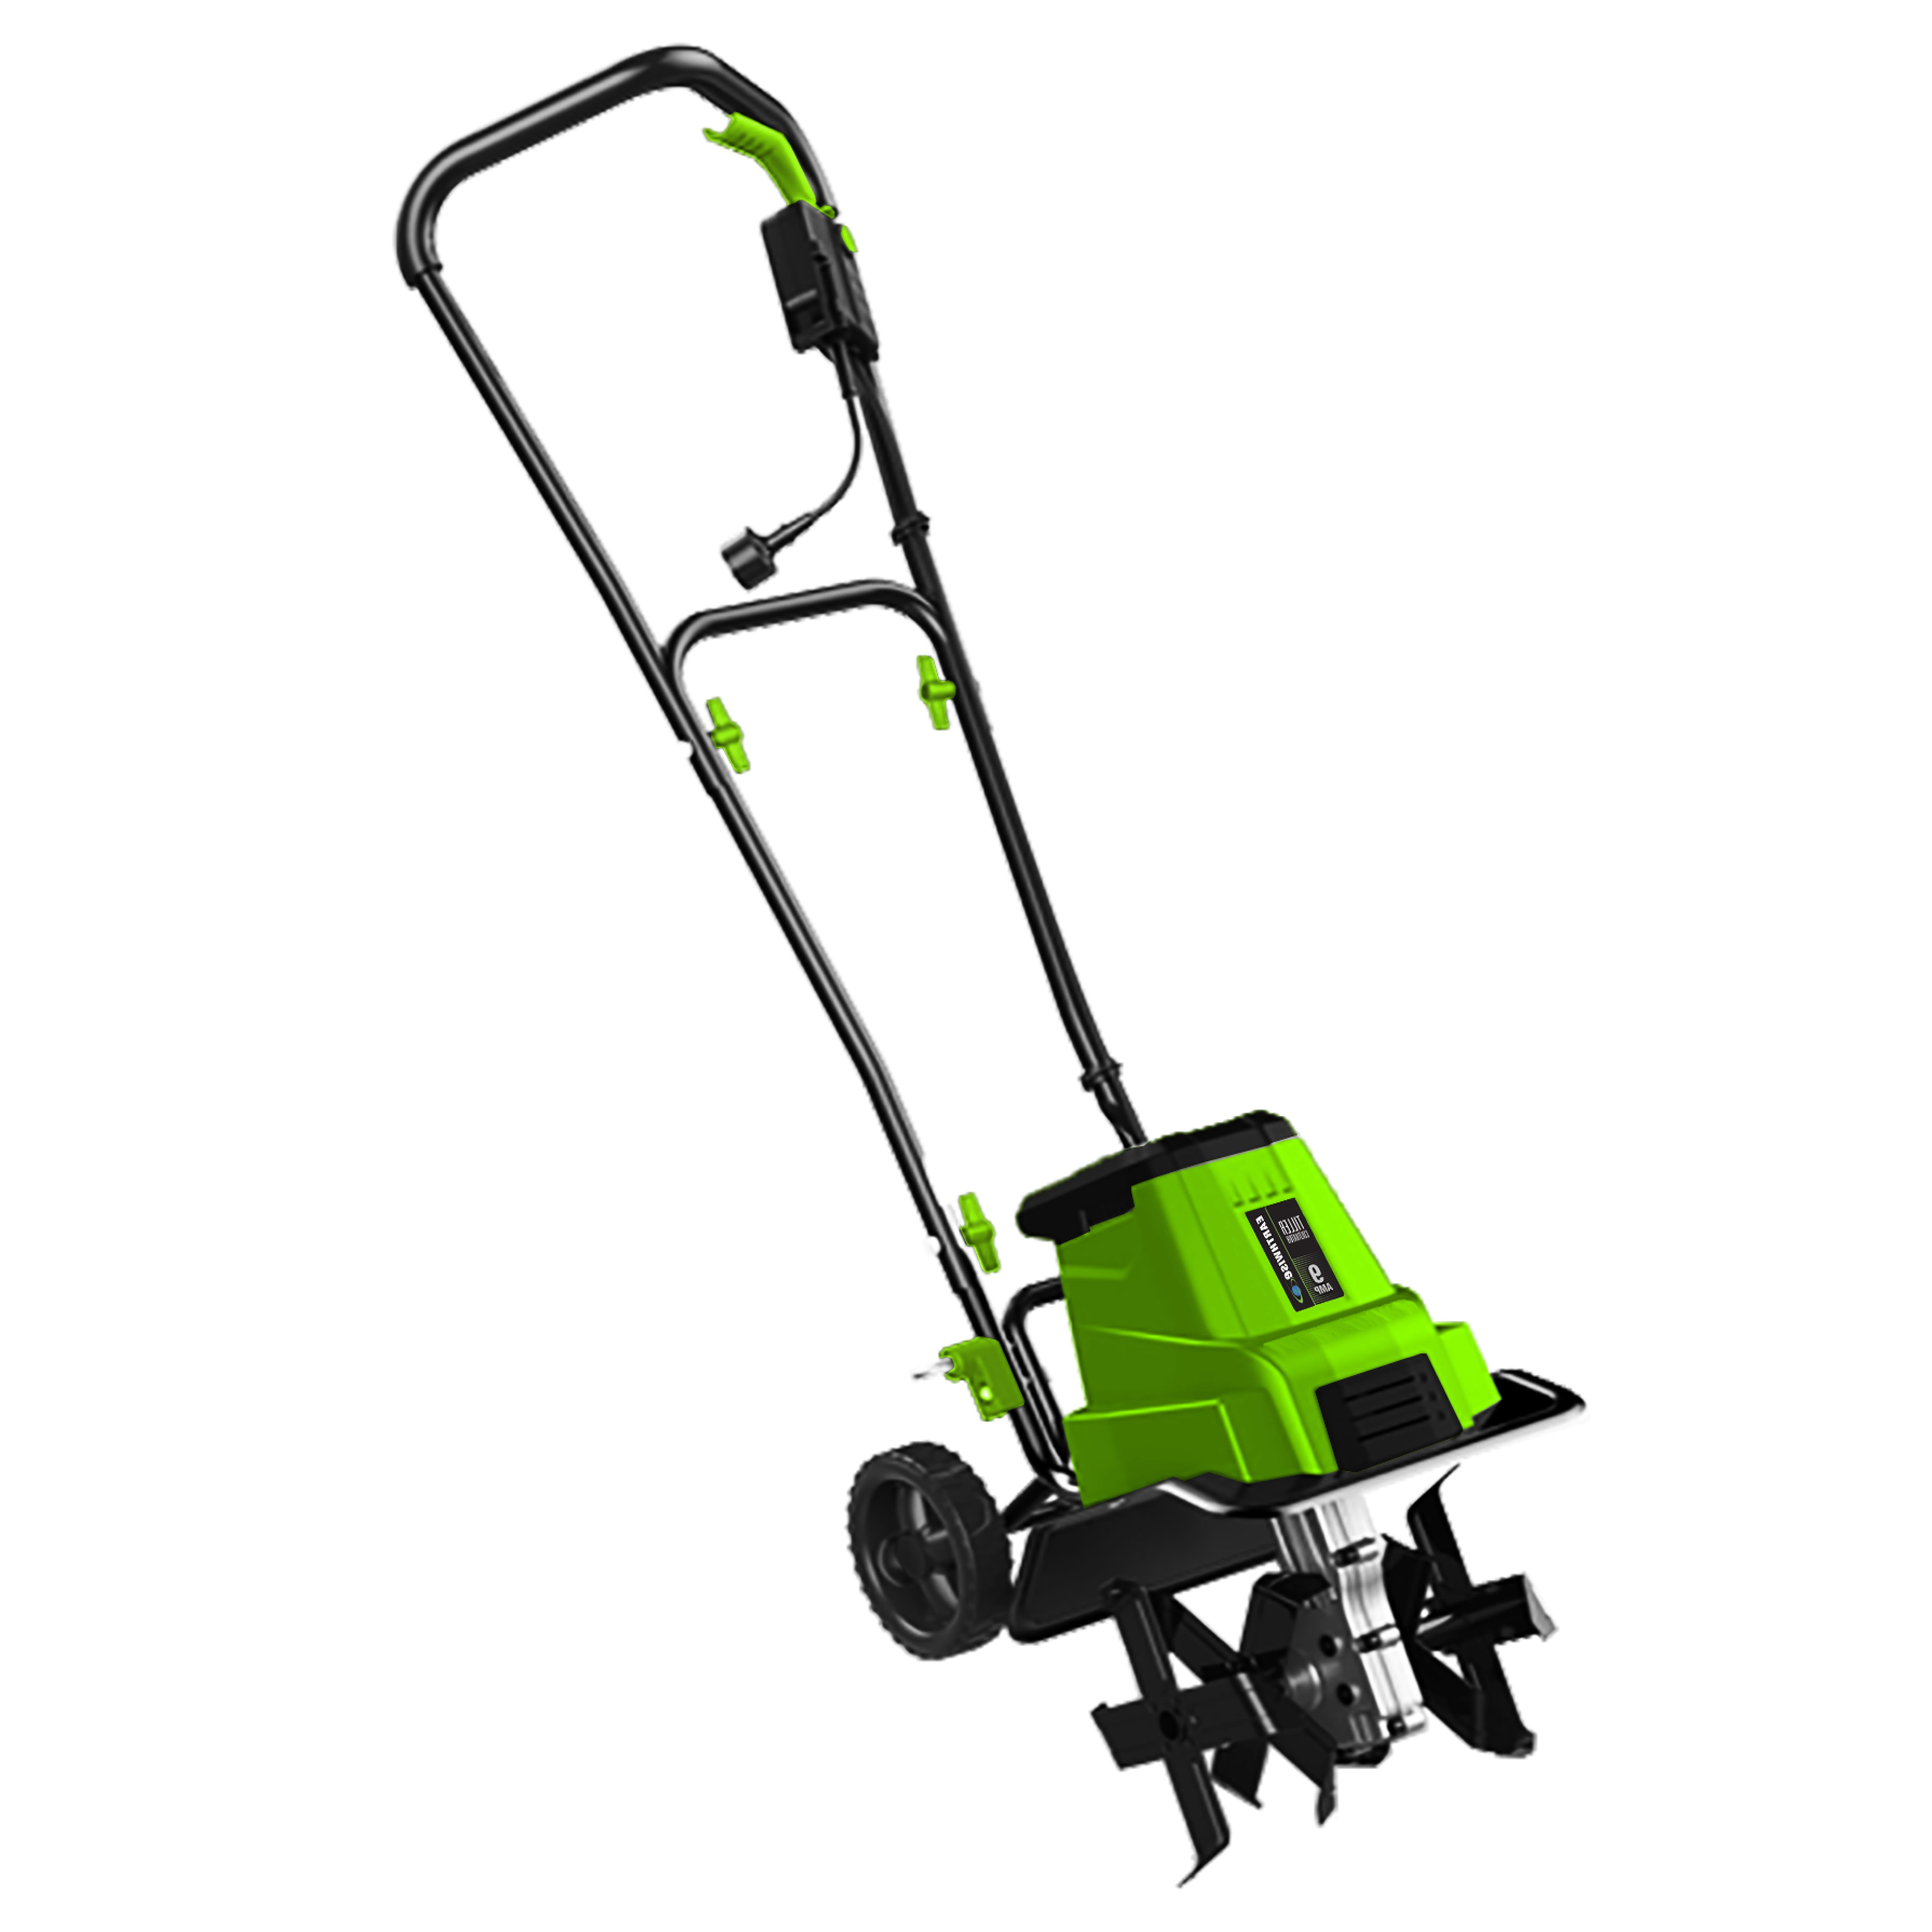 Earthwise TC70090 9 Amp Corded Electric Tiller Cultivator